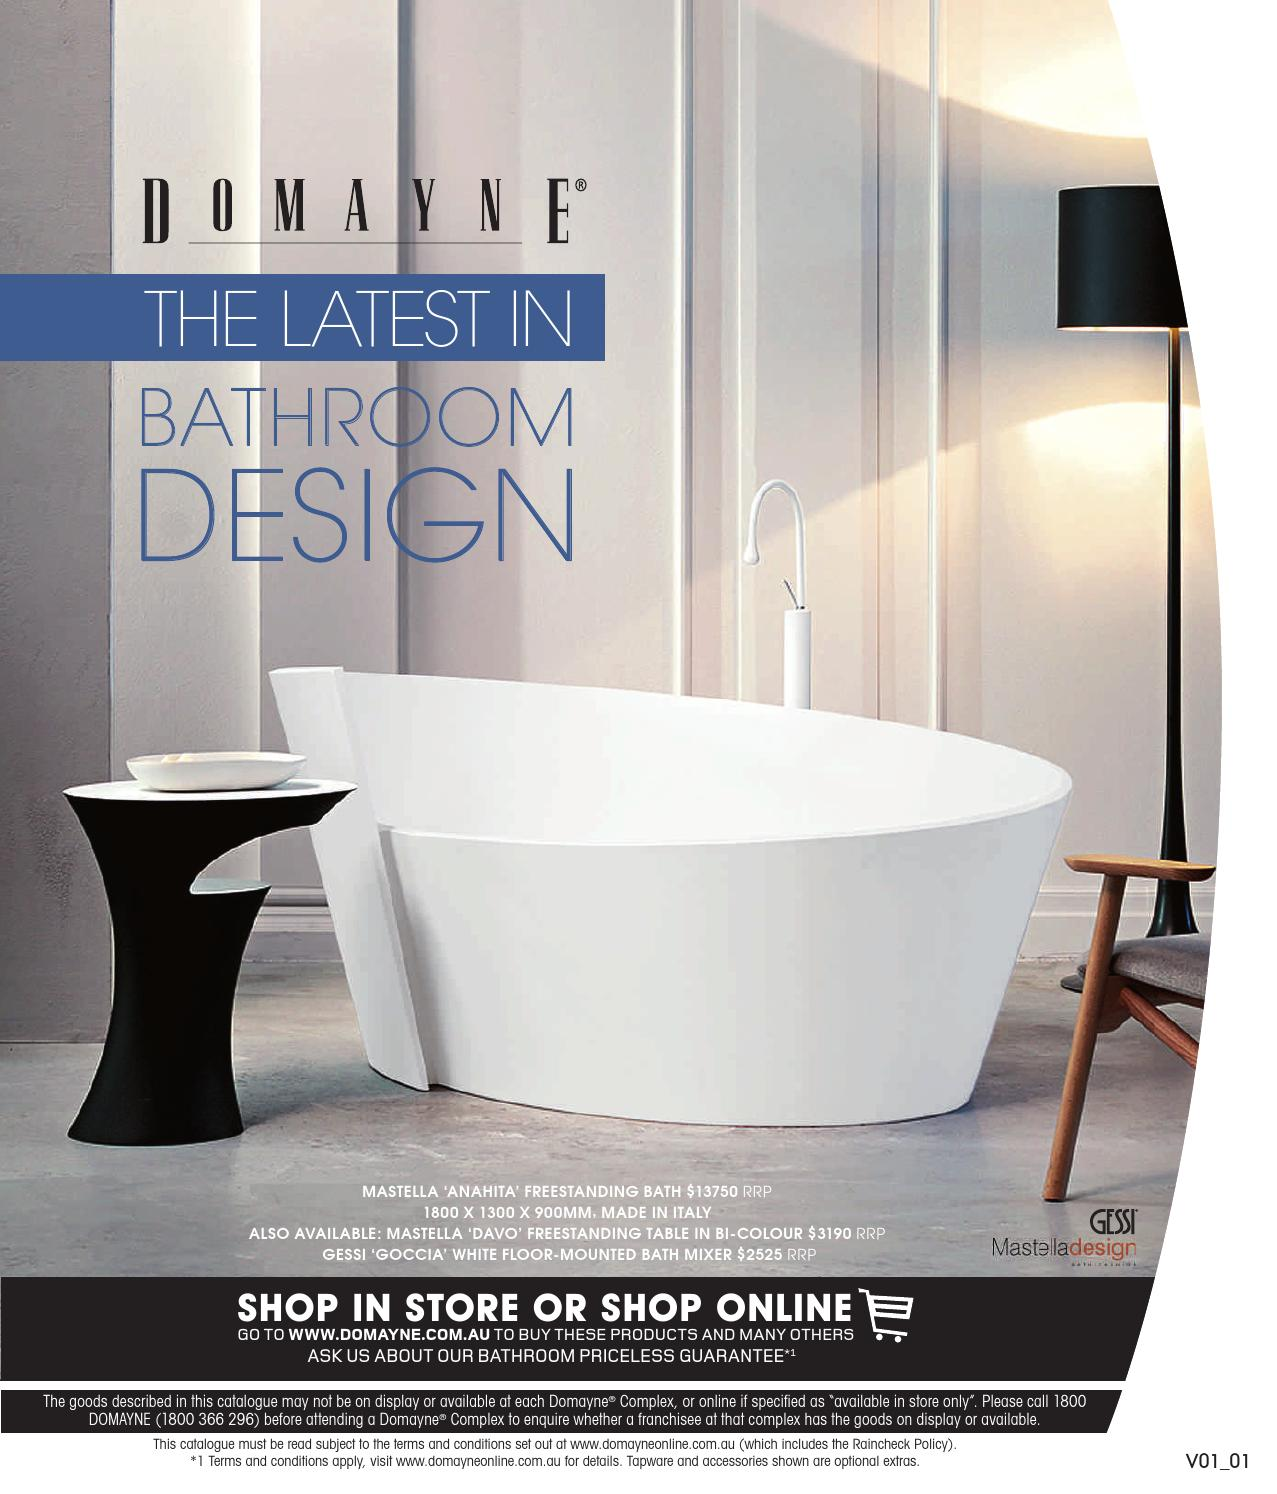 The Latest in Bathroom Design by Domayne - issuu